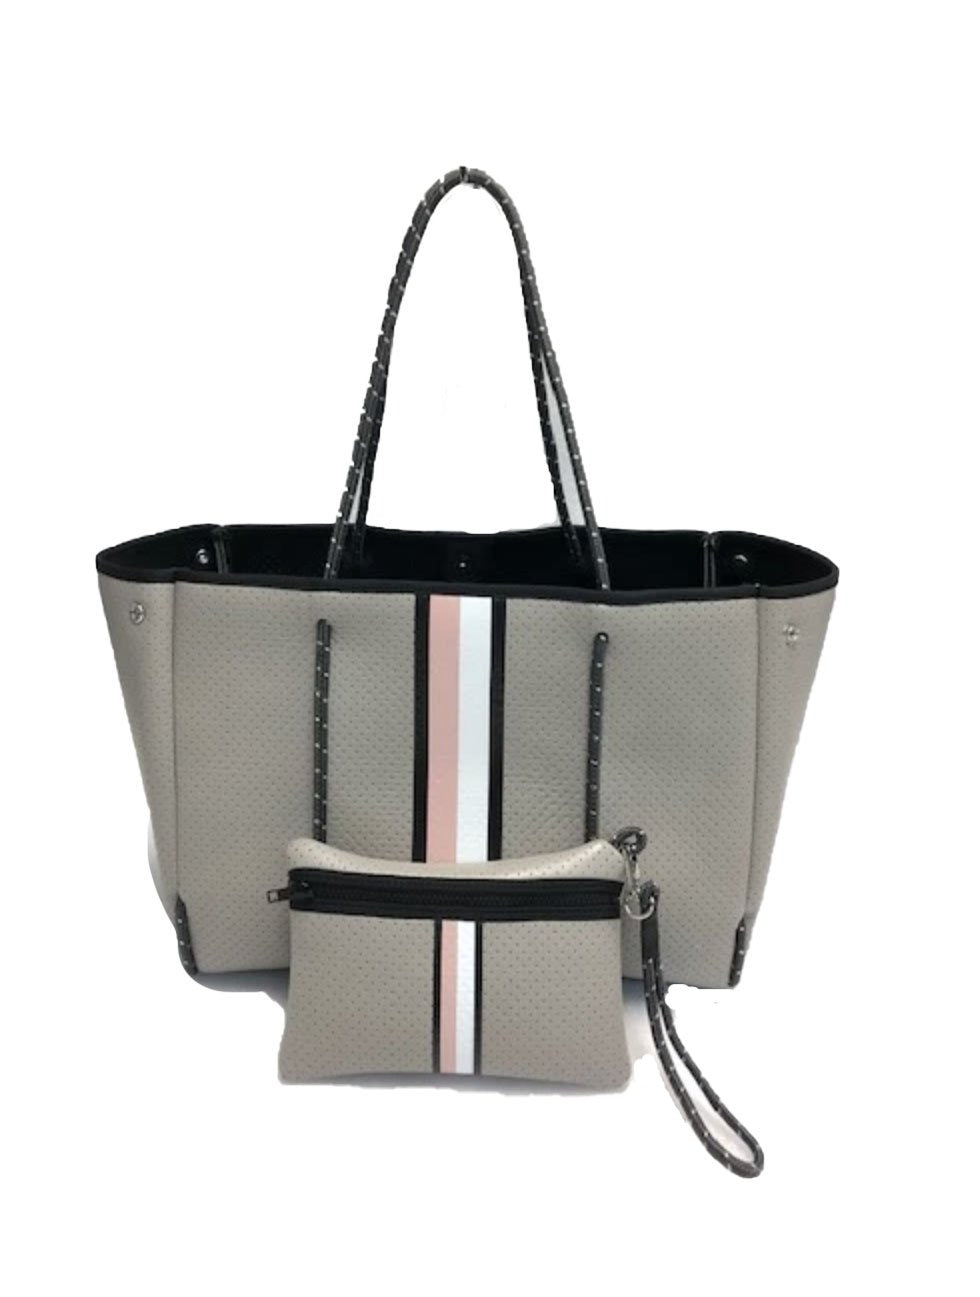 Haute Shore Greyson Posh Tote in Taupe with Black/Blush/White Stripes